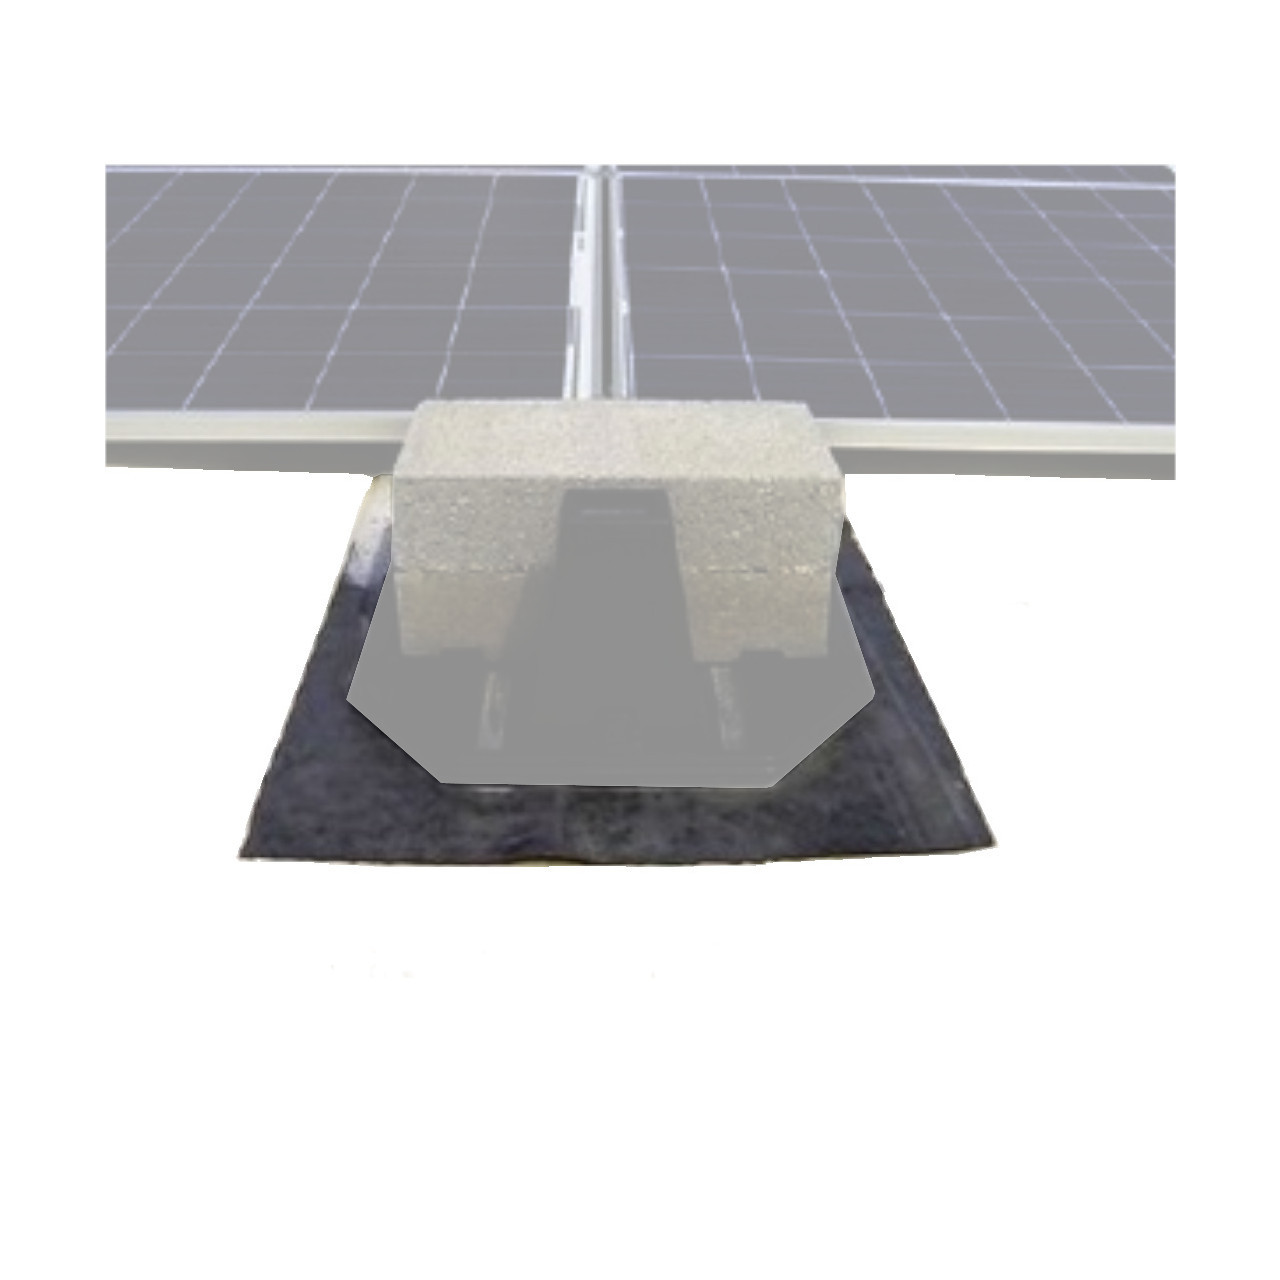 Ecolibrium - EcoFoot2+ Roof Protection Mat